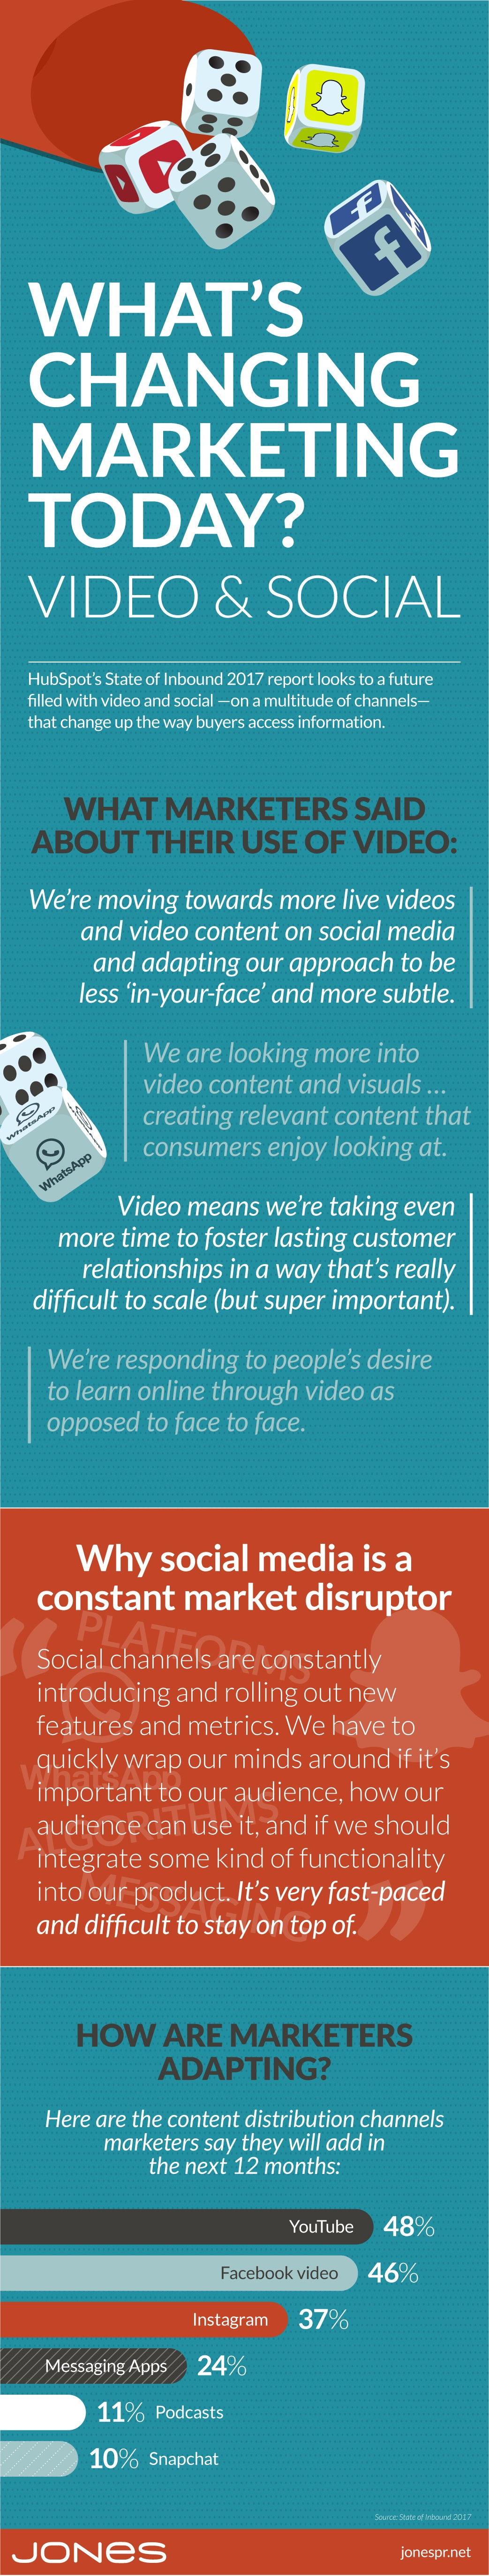 jones-video-social-marketing-disruptors.jpg